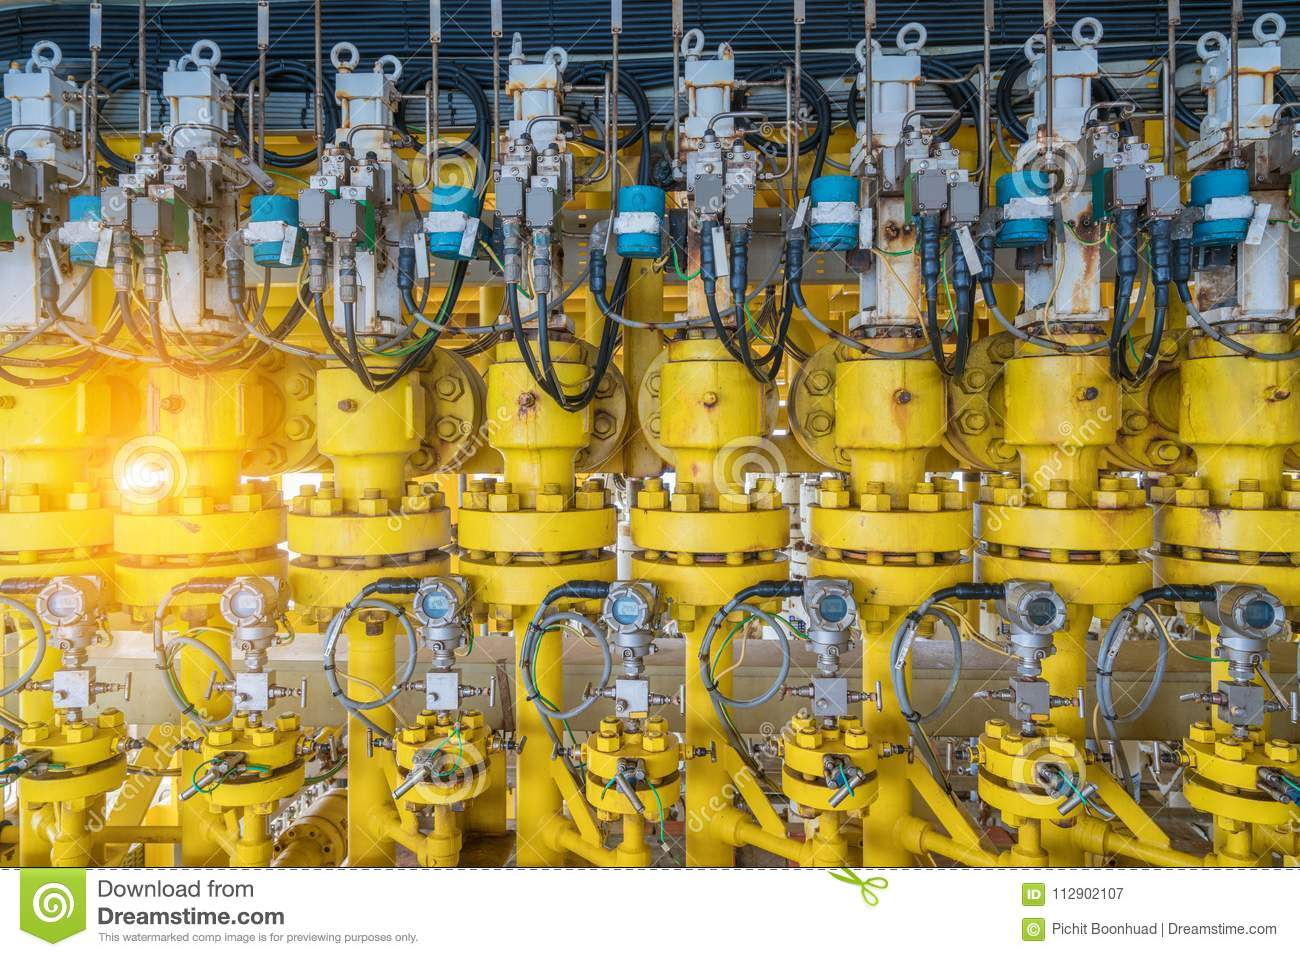 Hydraulic choke or throttle valves at offshore oil and gas wellhead remote platform